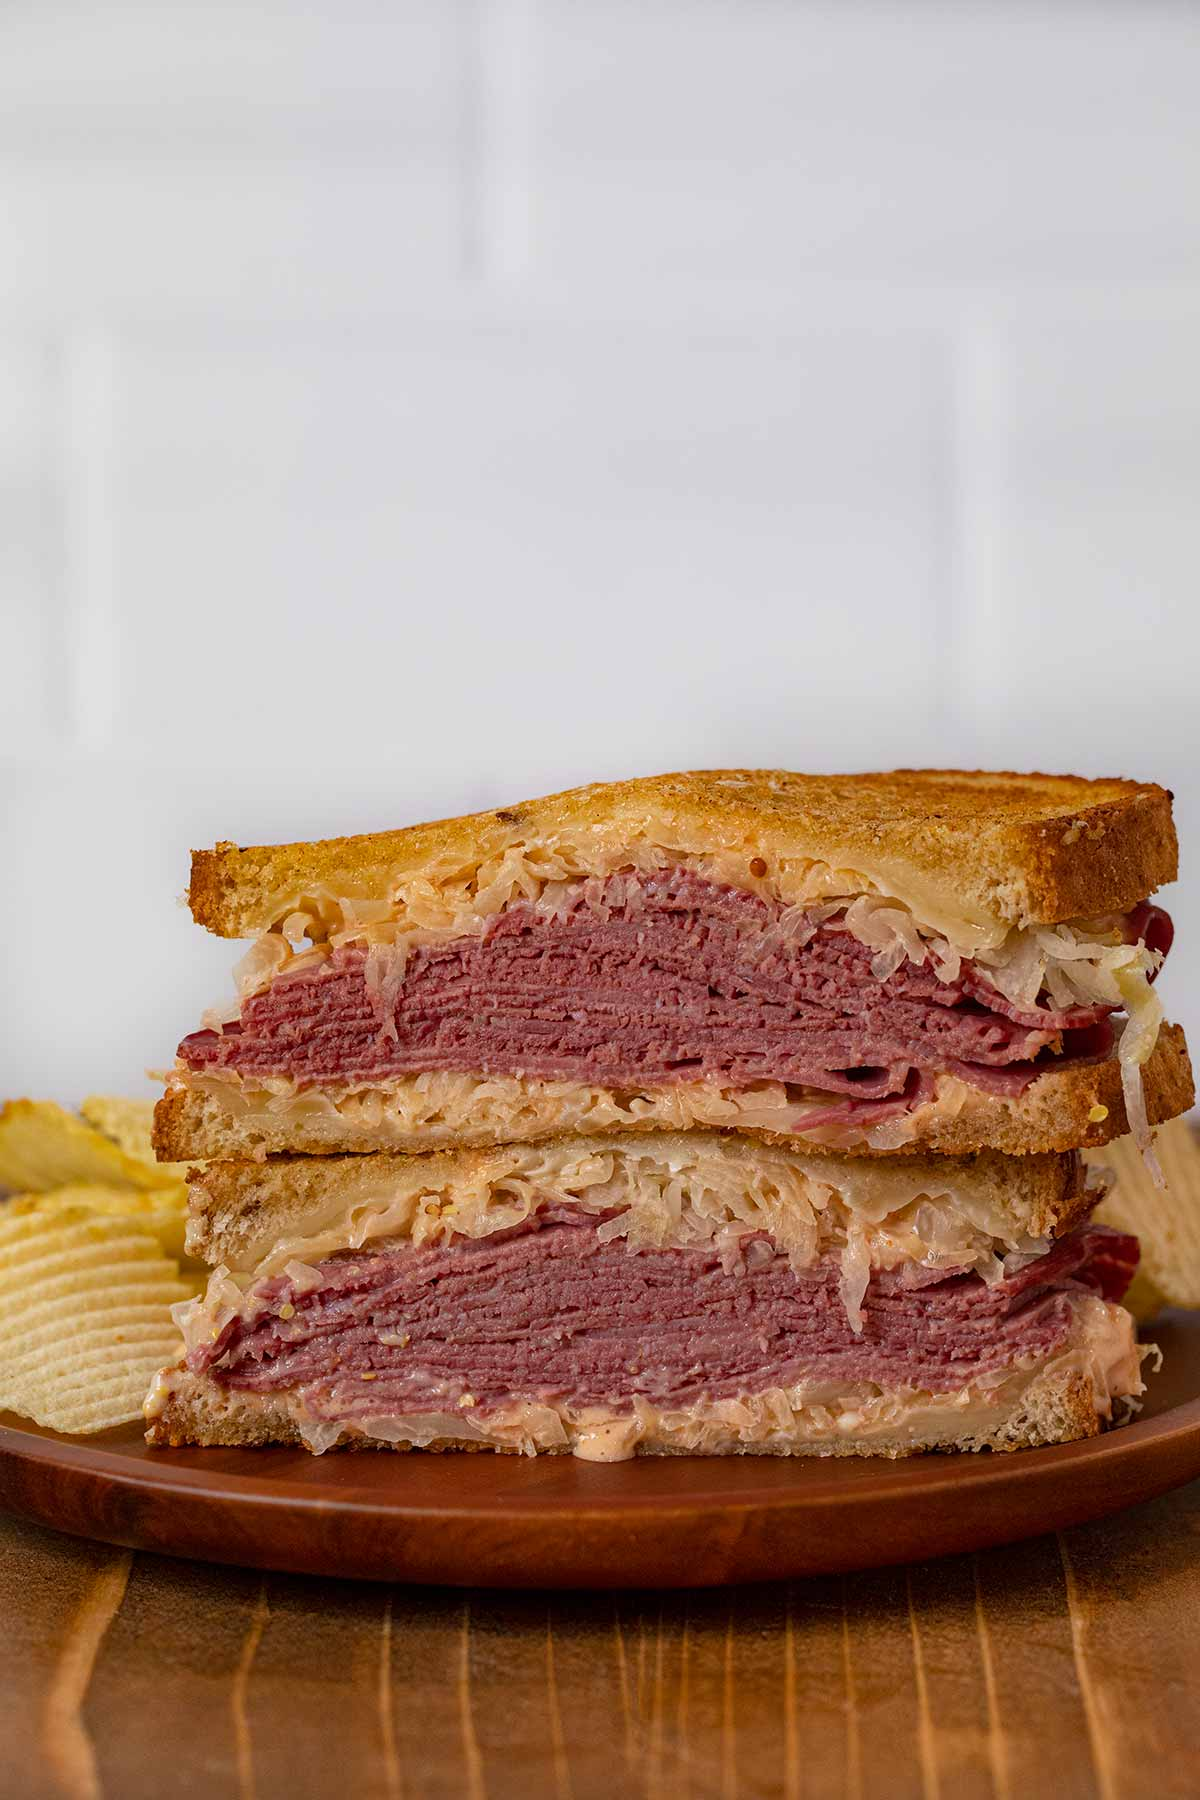 Reuben Sandwich halves in stack on plate with chips